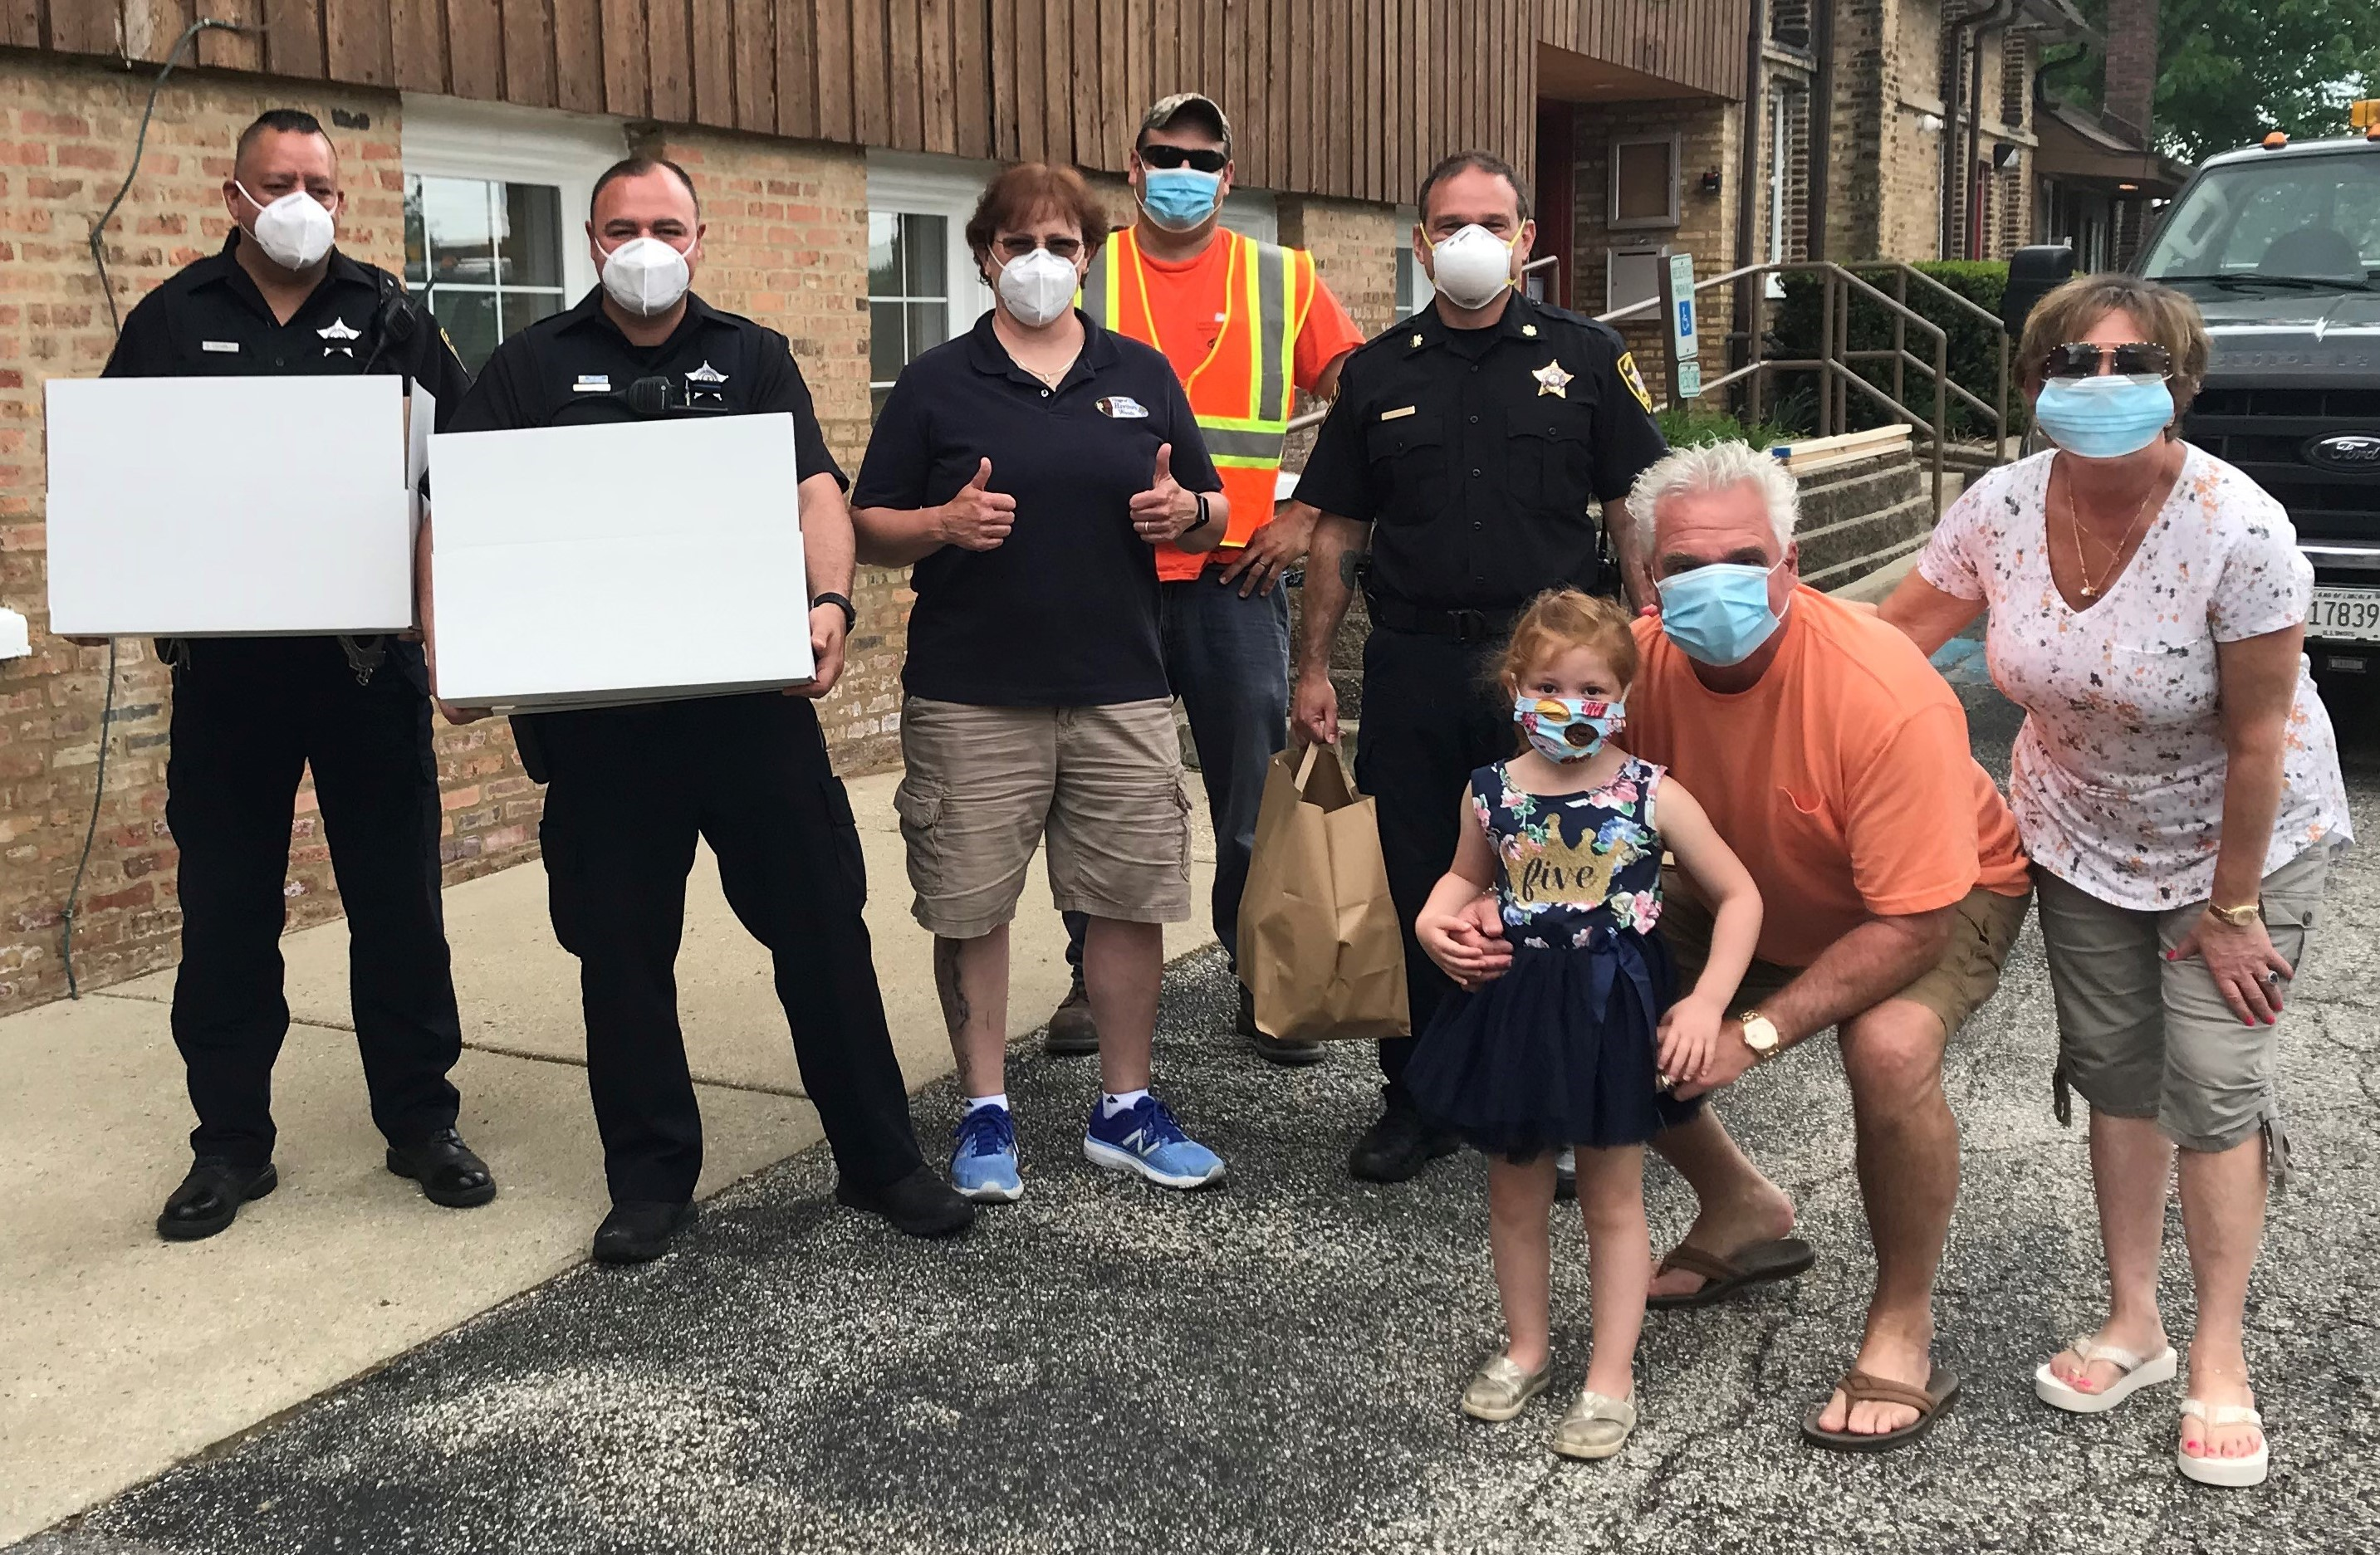 The Krumwiede family giving first responders boxed lunches